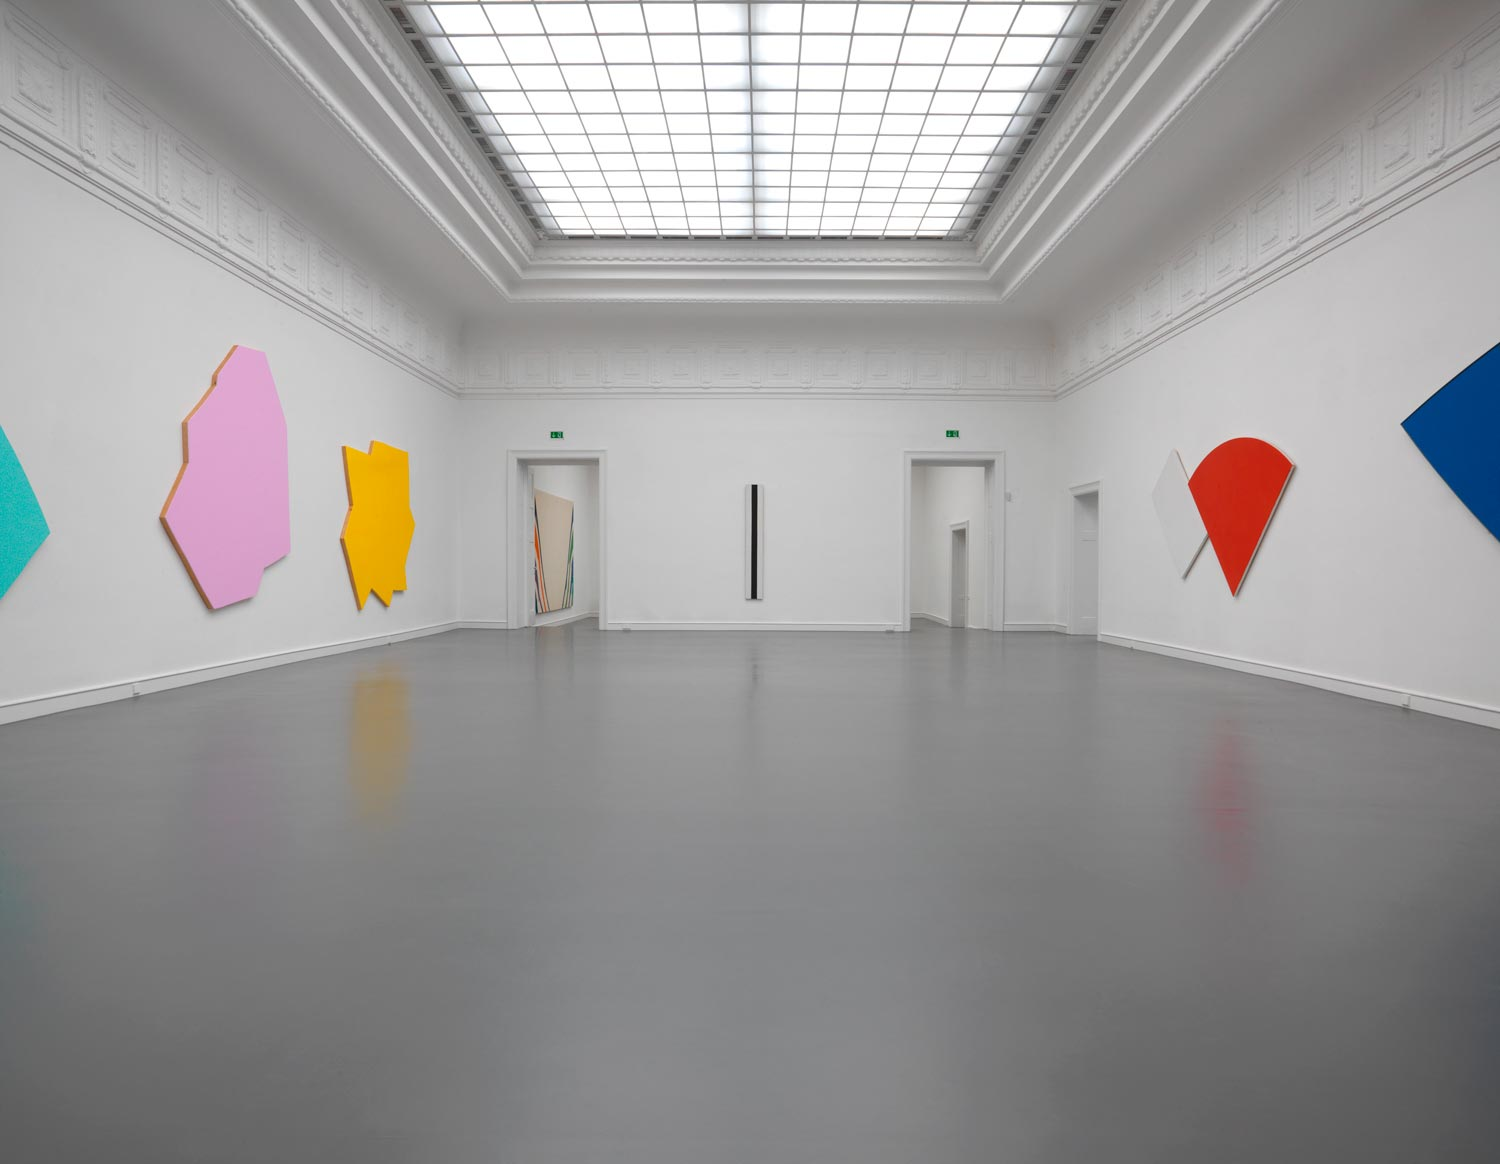 """Who's afraid of Red, Yellow and Blue?"", Staatliche Kunsthalle Baden-Baden"